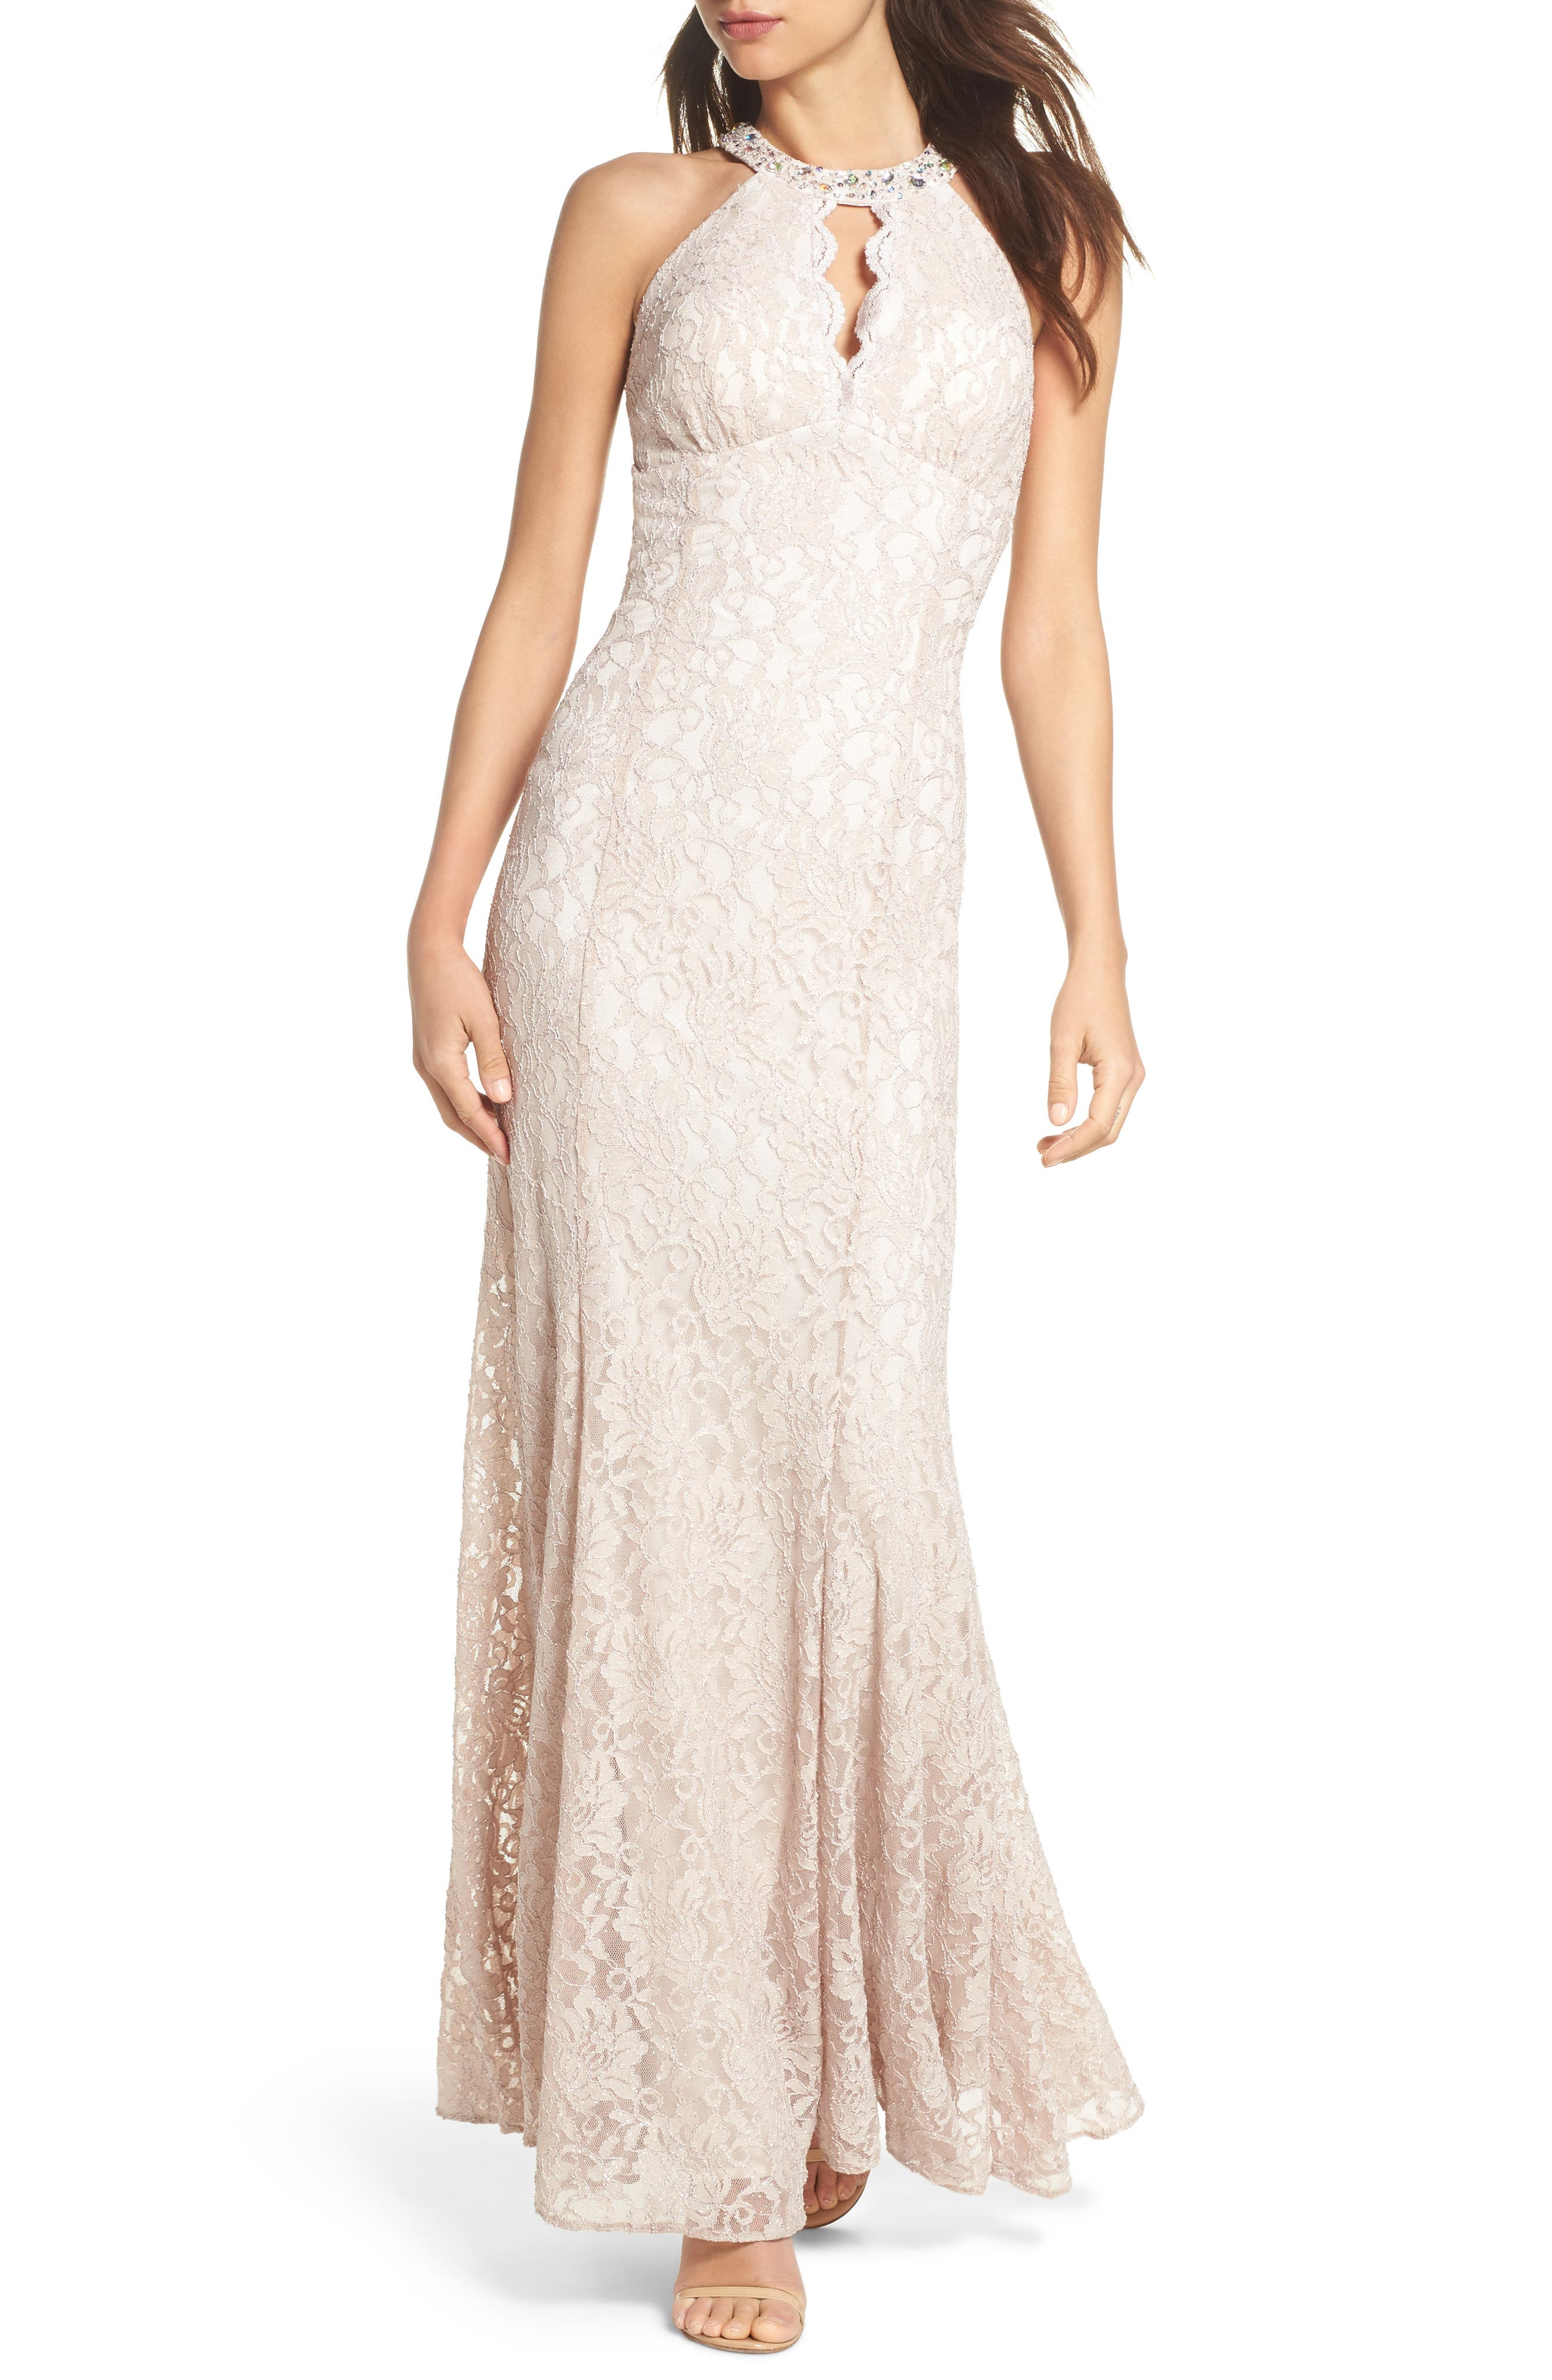 Embellished Lace Gown,                             Main thumbnail 1, color,                             252